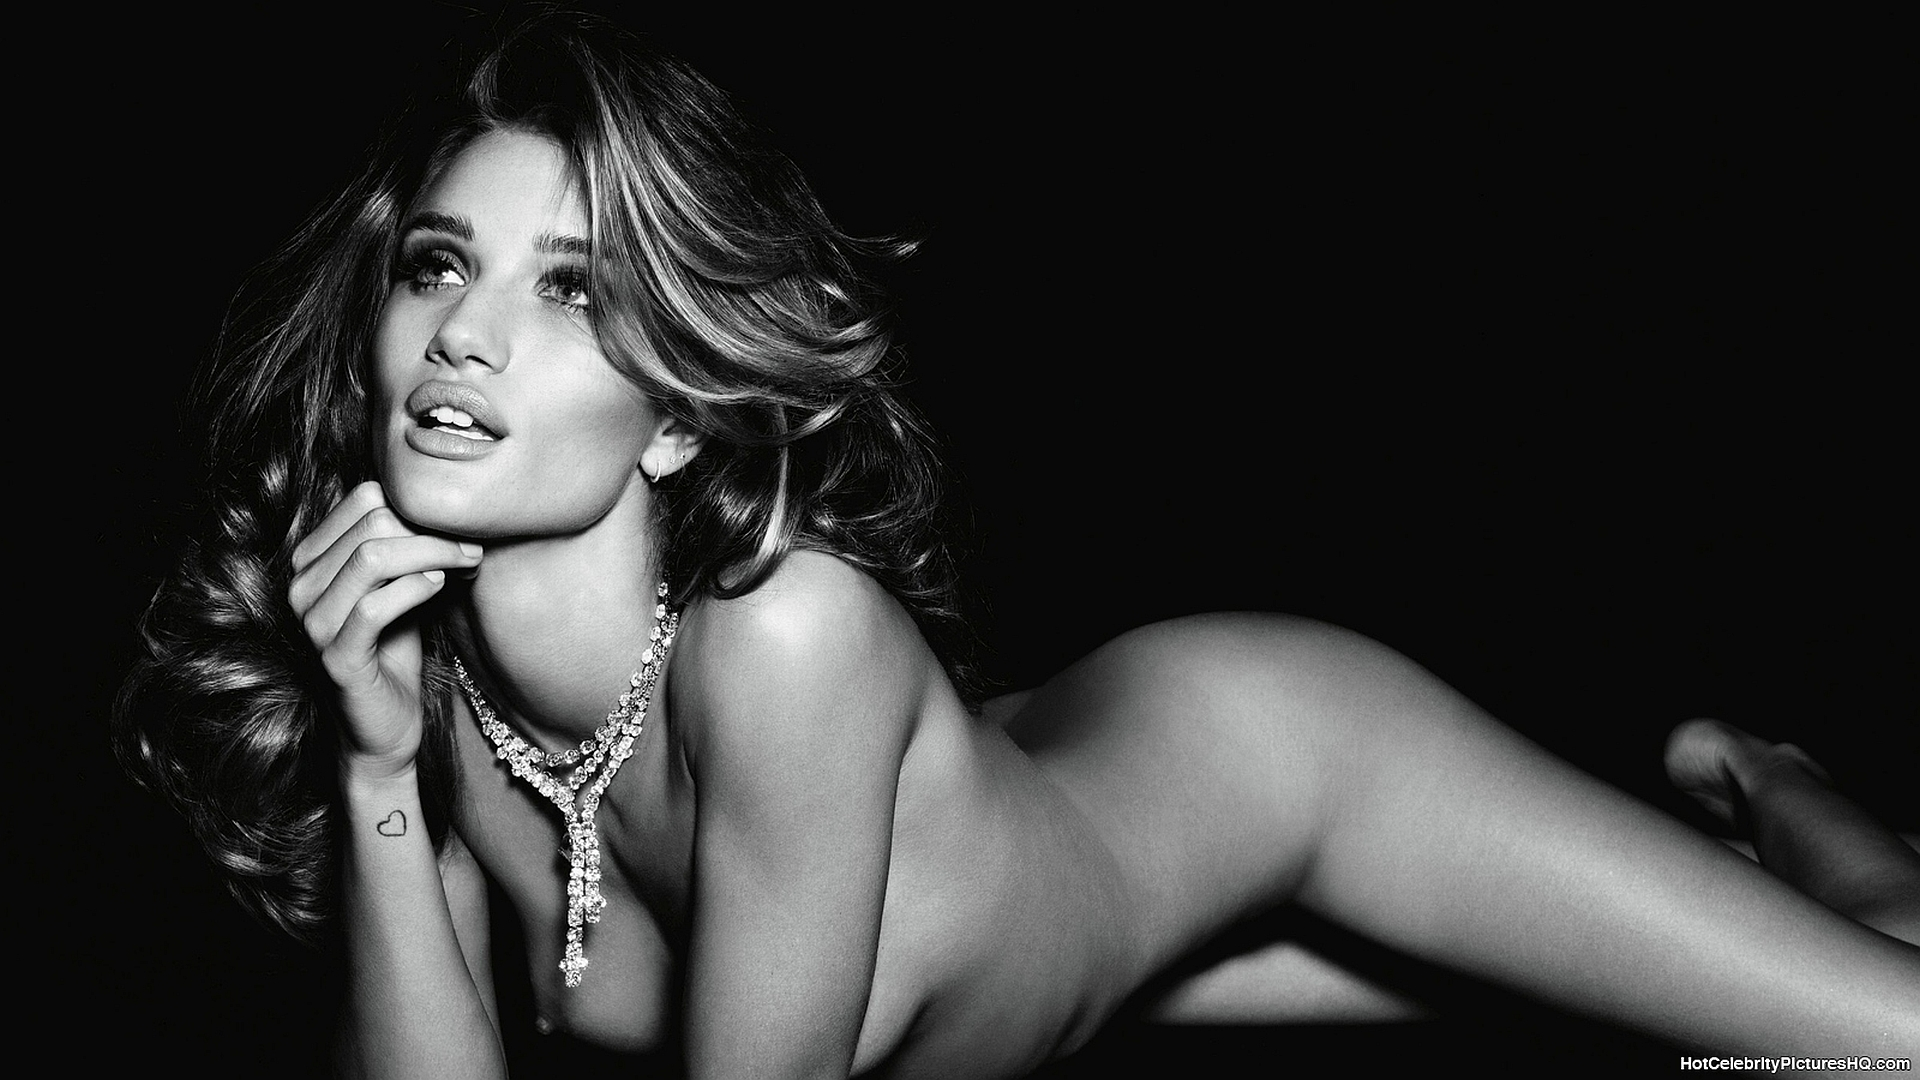 Rosie-Huntington-Whiteley-nude-hot-black